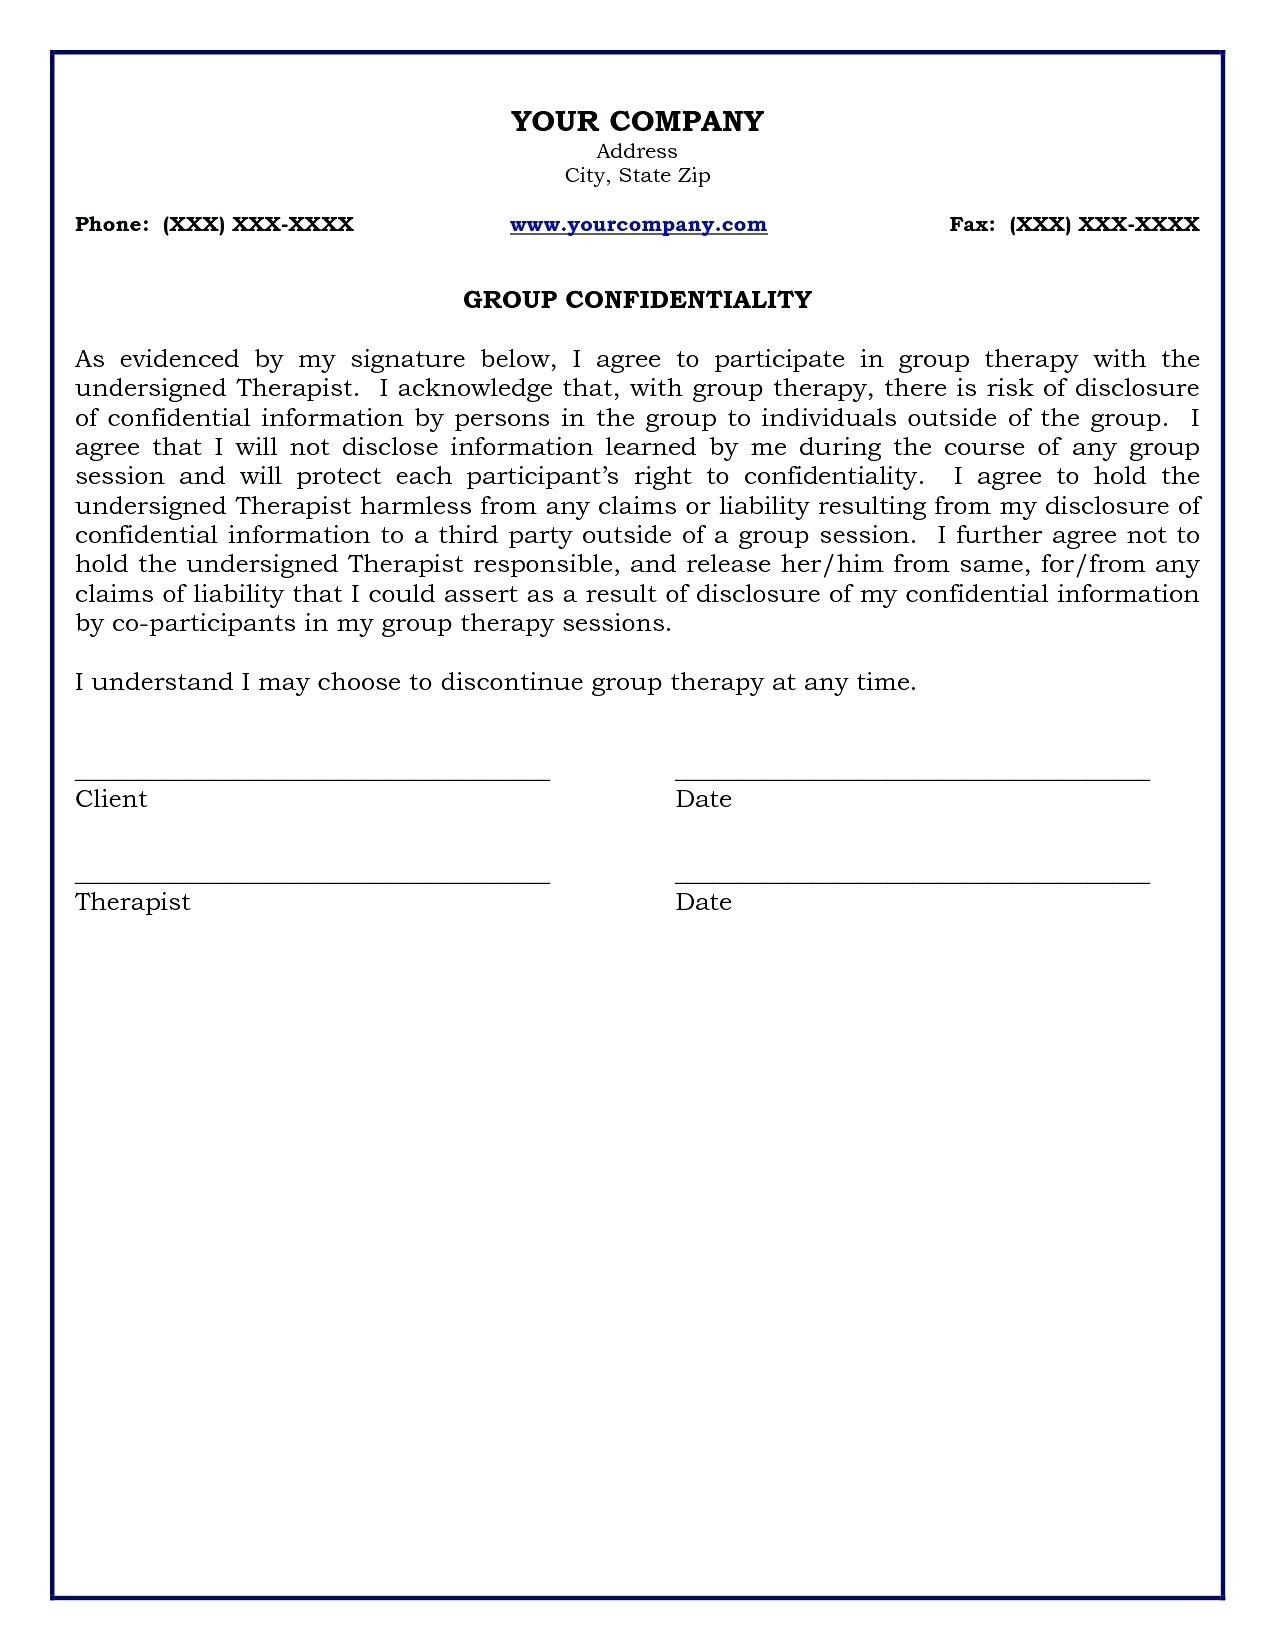 24 Confidentiality Agreement Template Excel Templates Template Confidentiality Agreement Template Business Plan Template Word Job Resume Template Templates Free confidentiality agreement template download